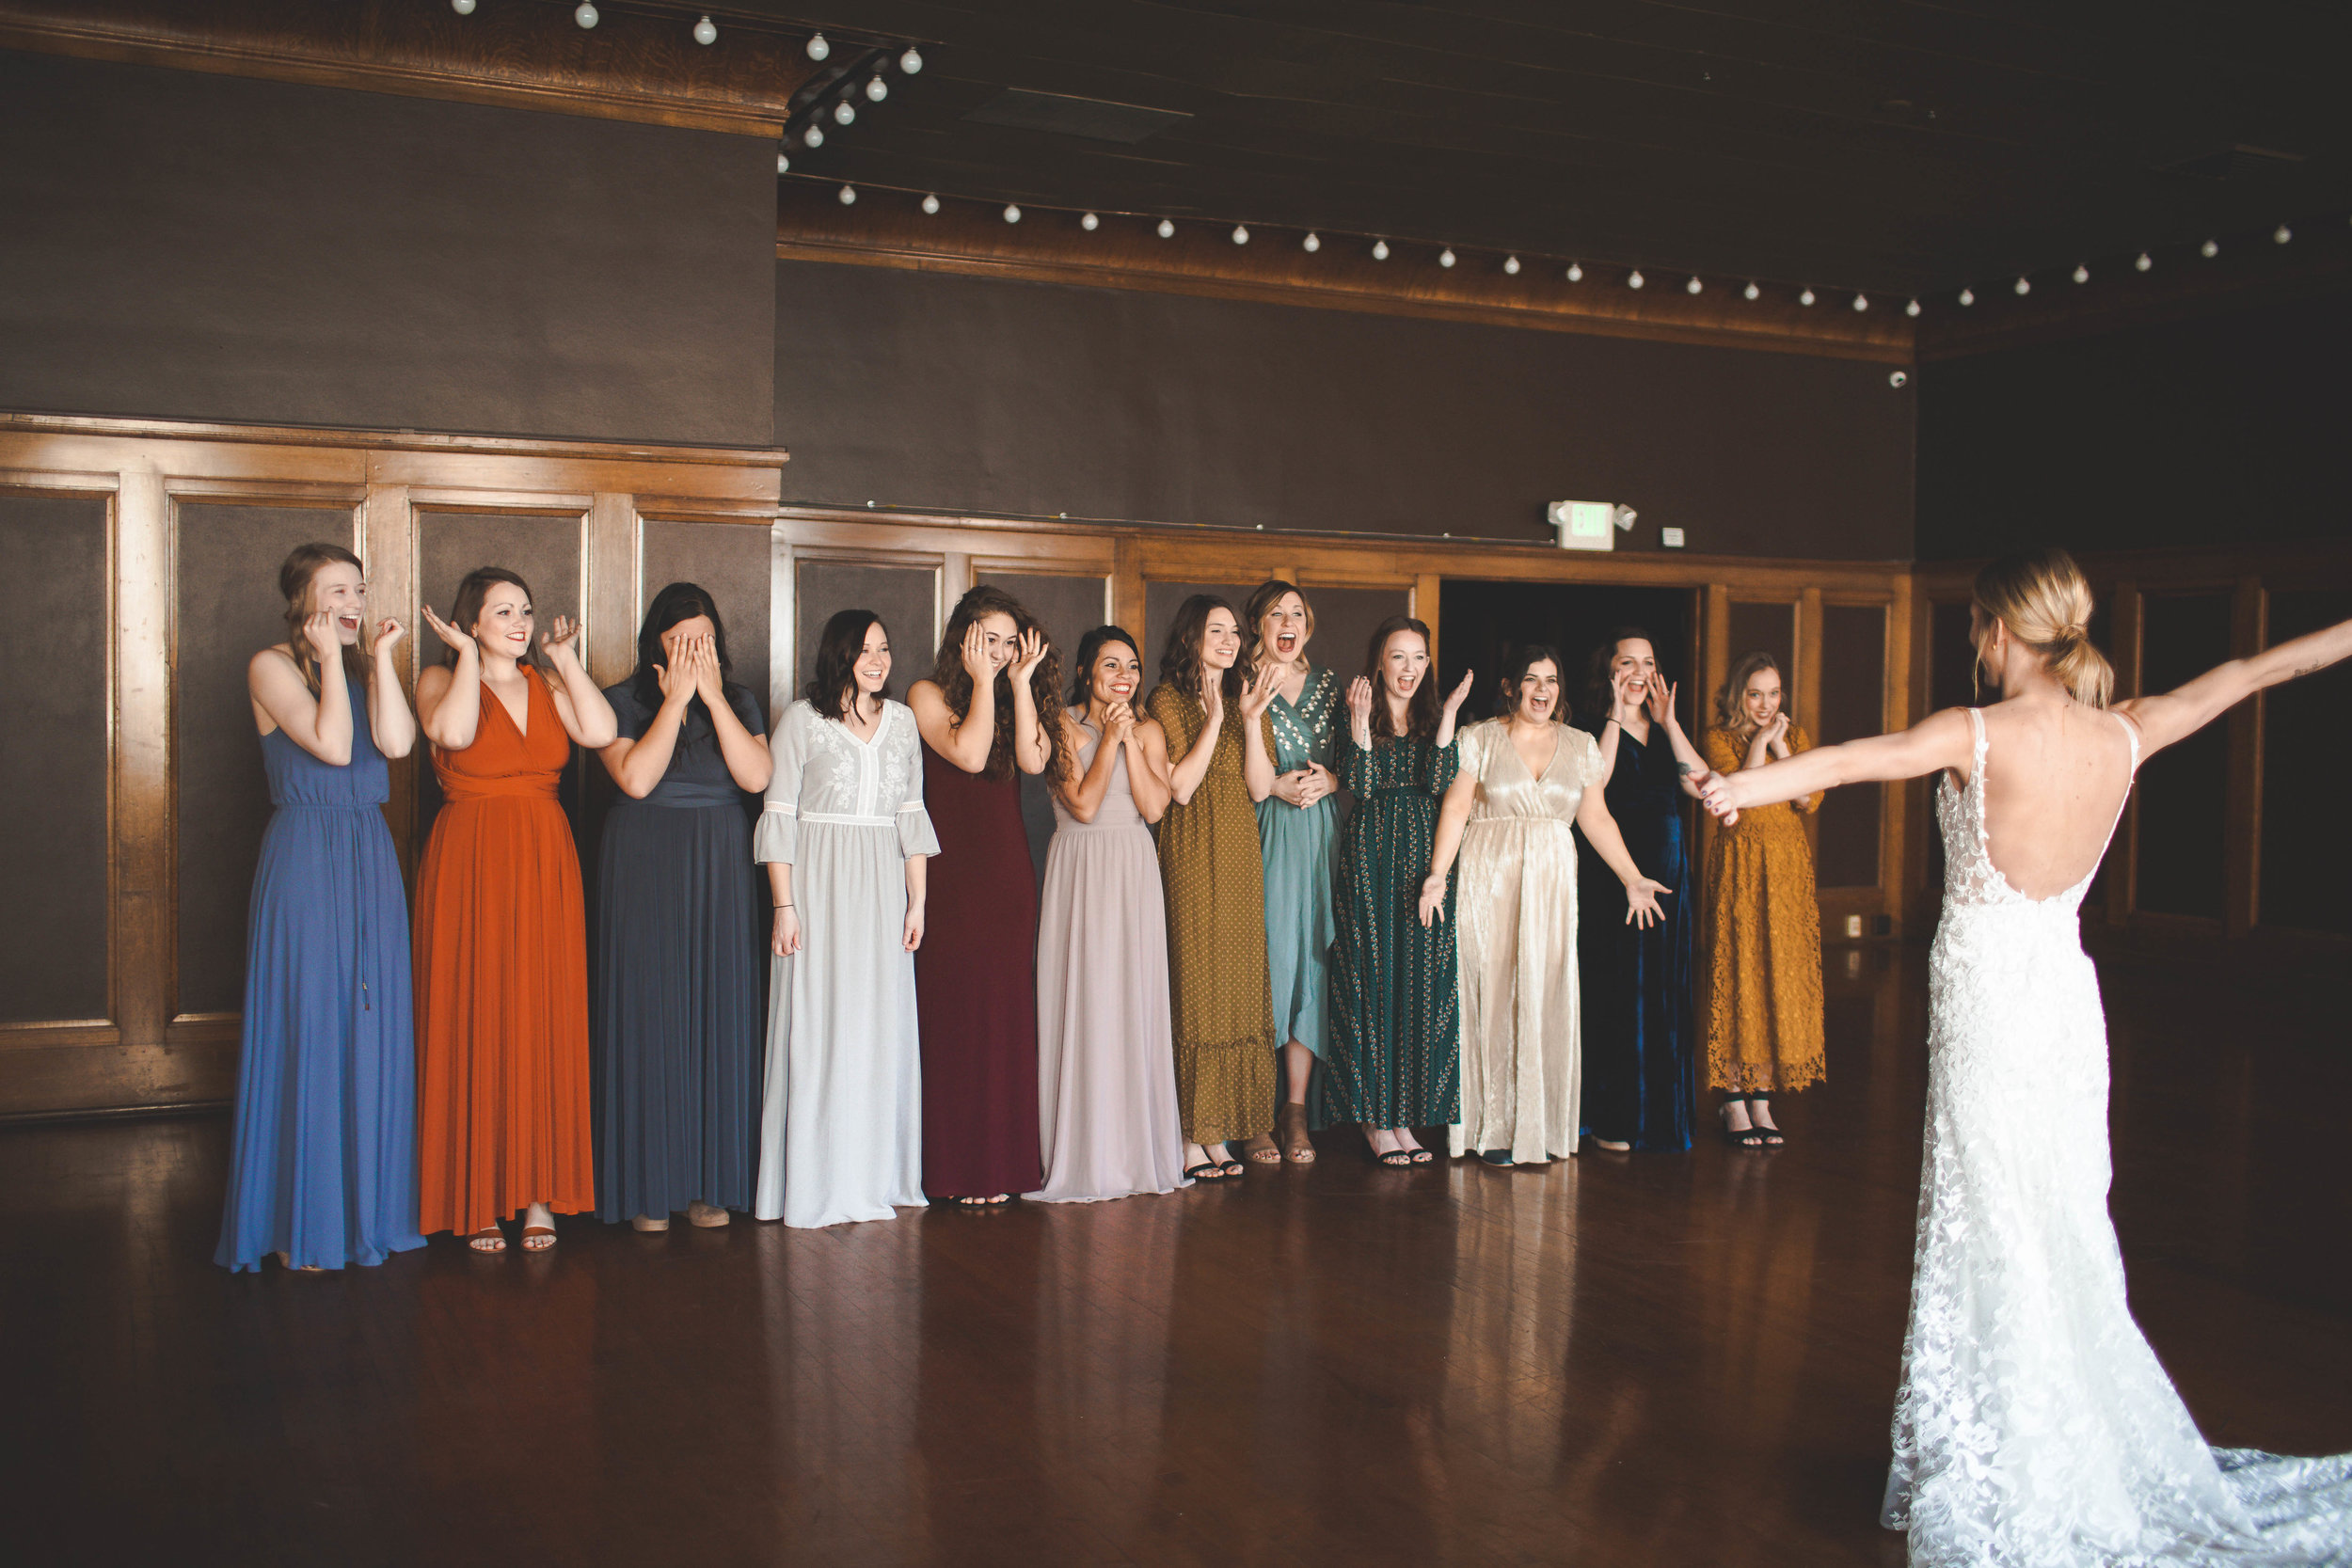 surprise bridesmaids wedding spokane bride